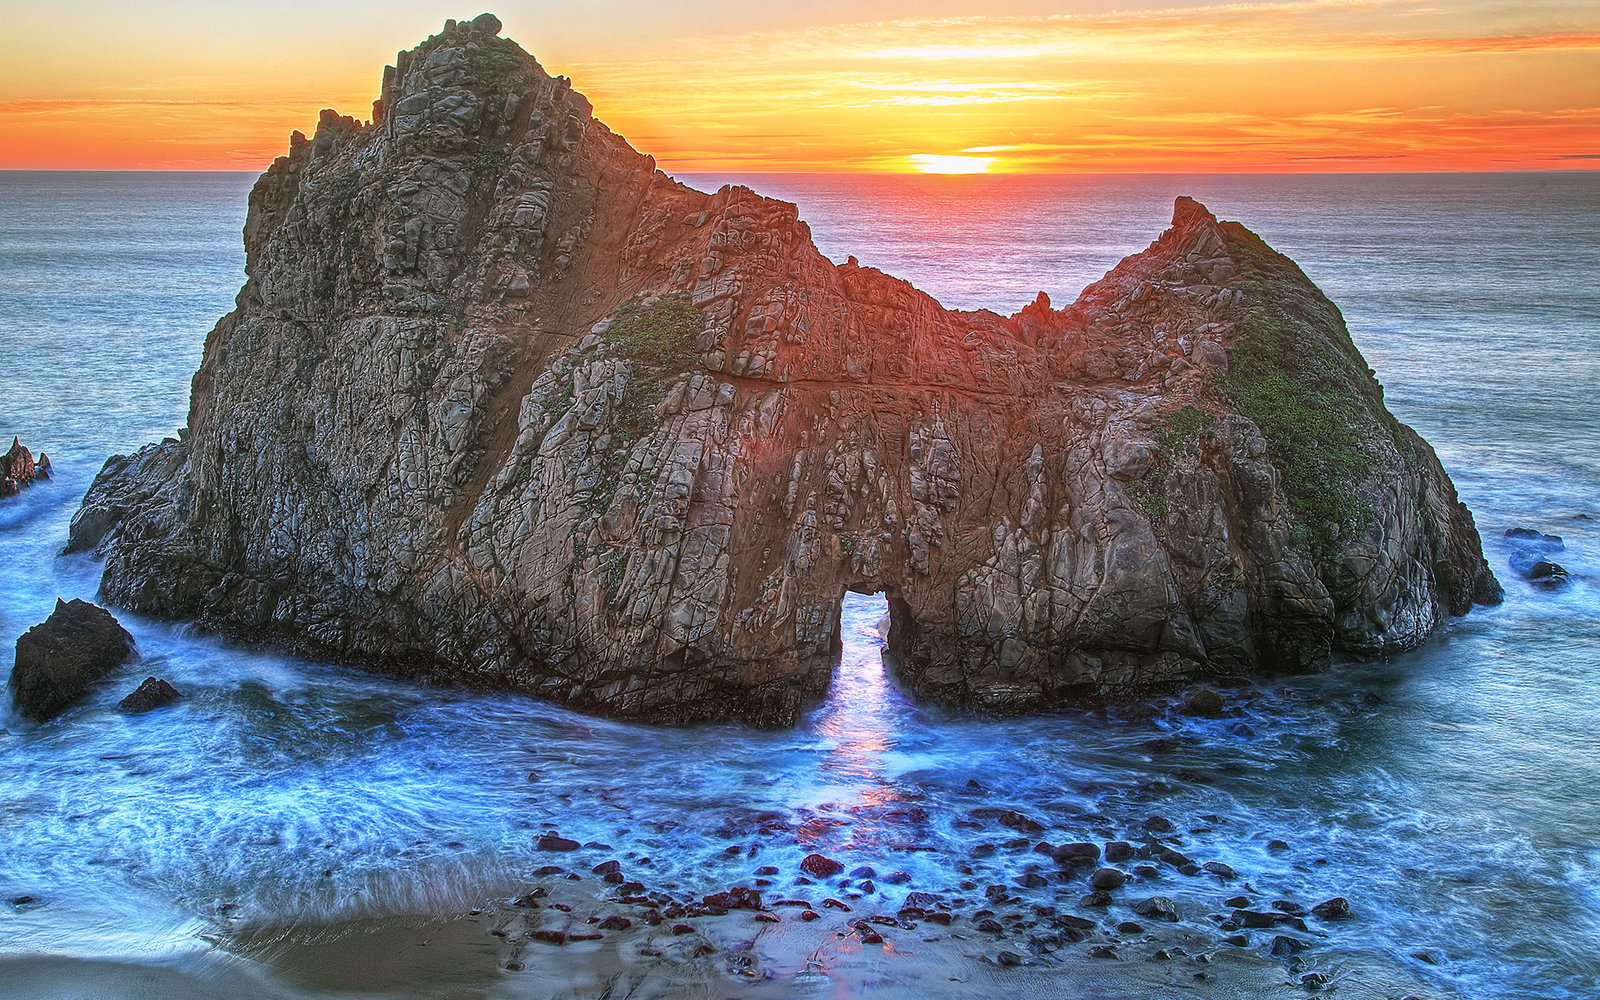 Pfeiffer Beach, California